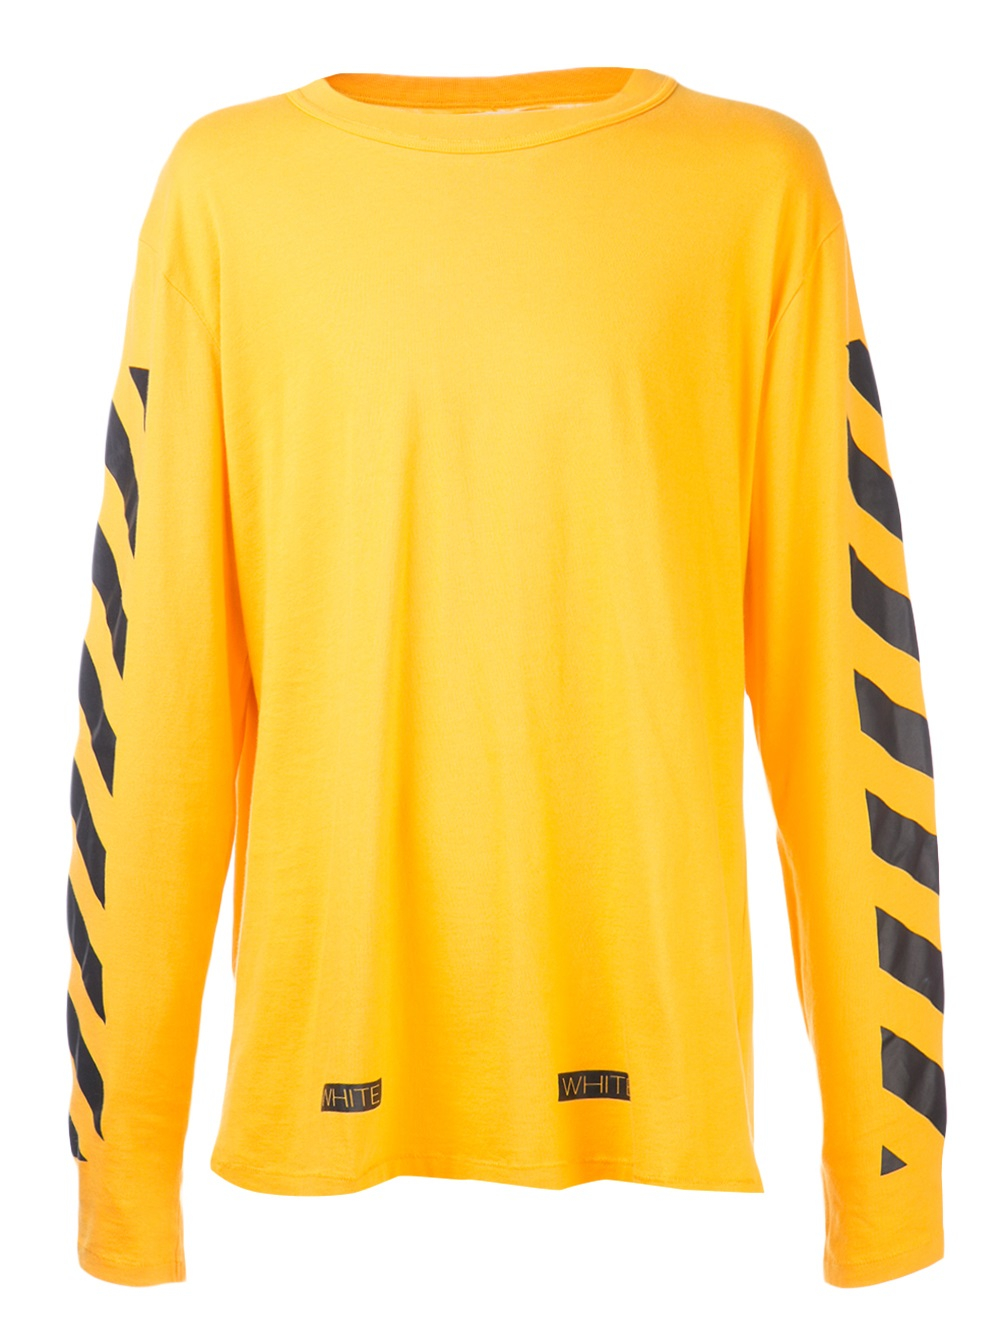 Off White C O Virgil Abloh Long Sleeve T Shirt In Yellow